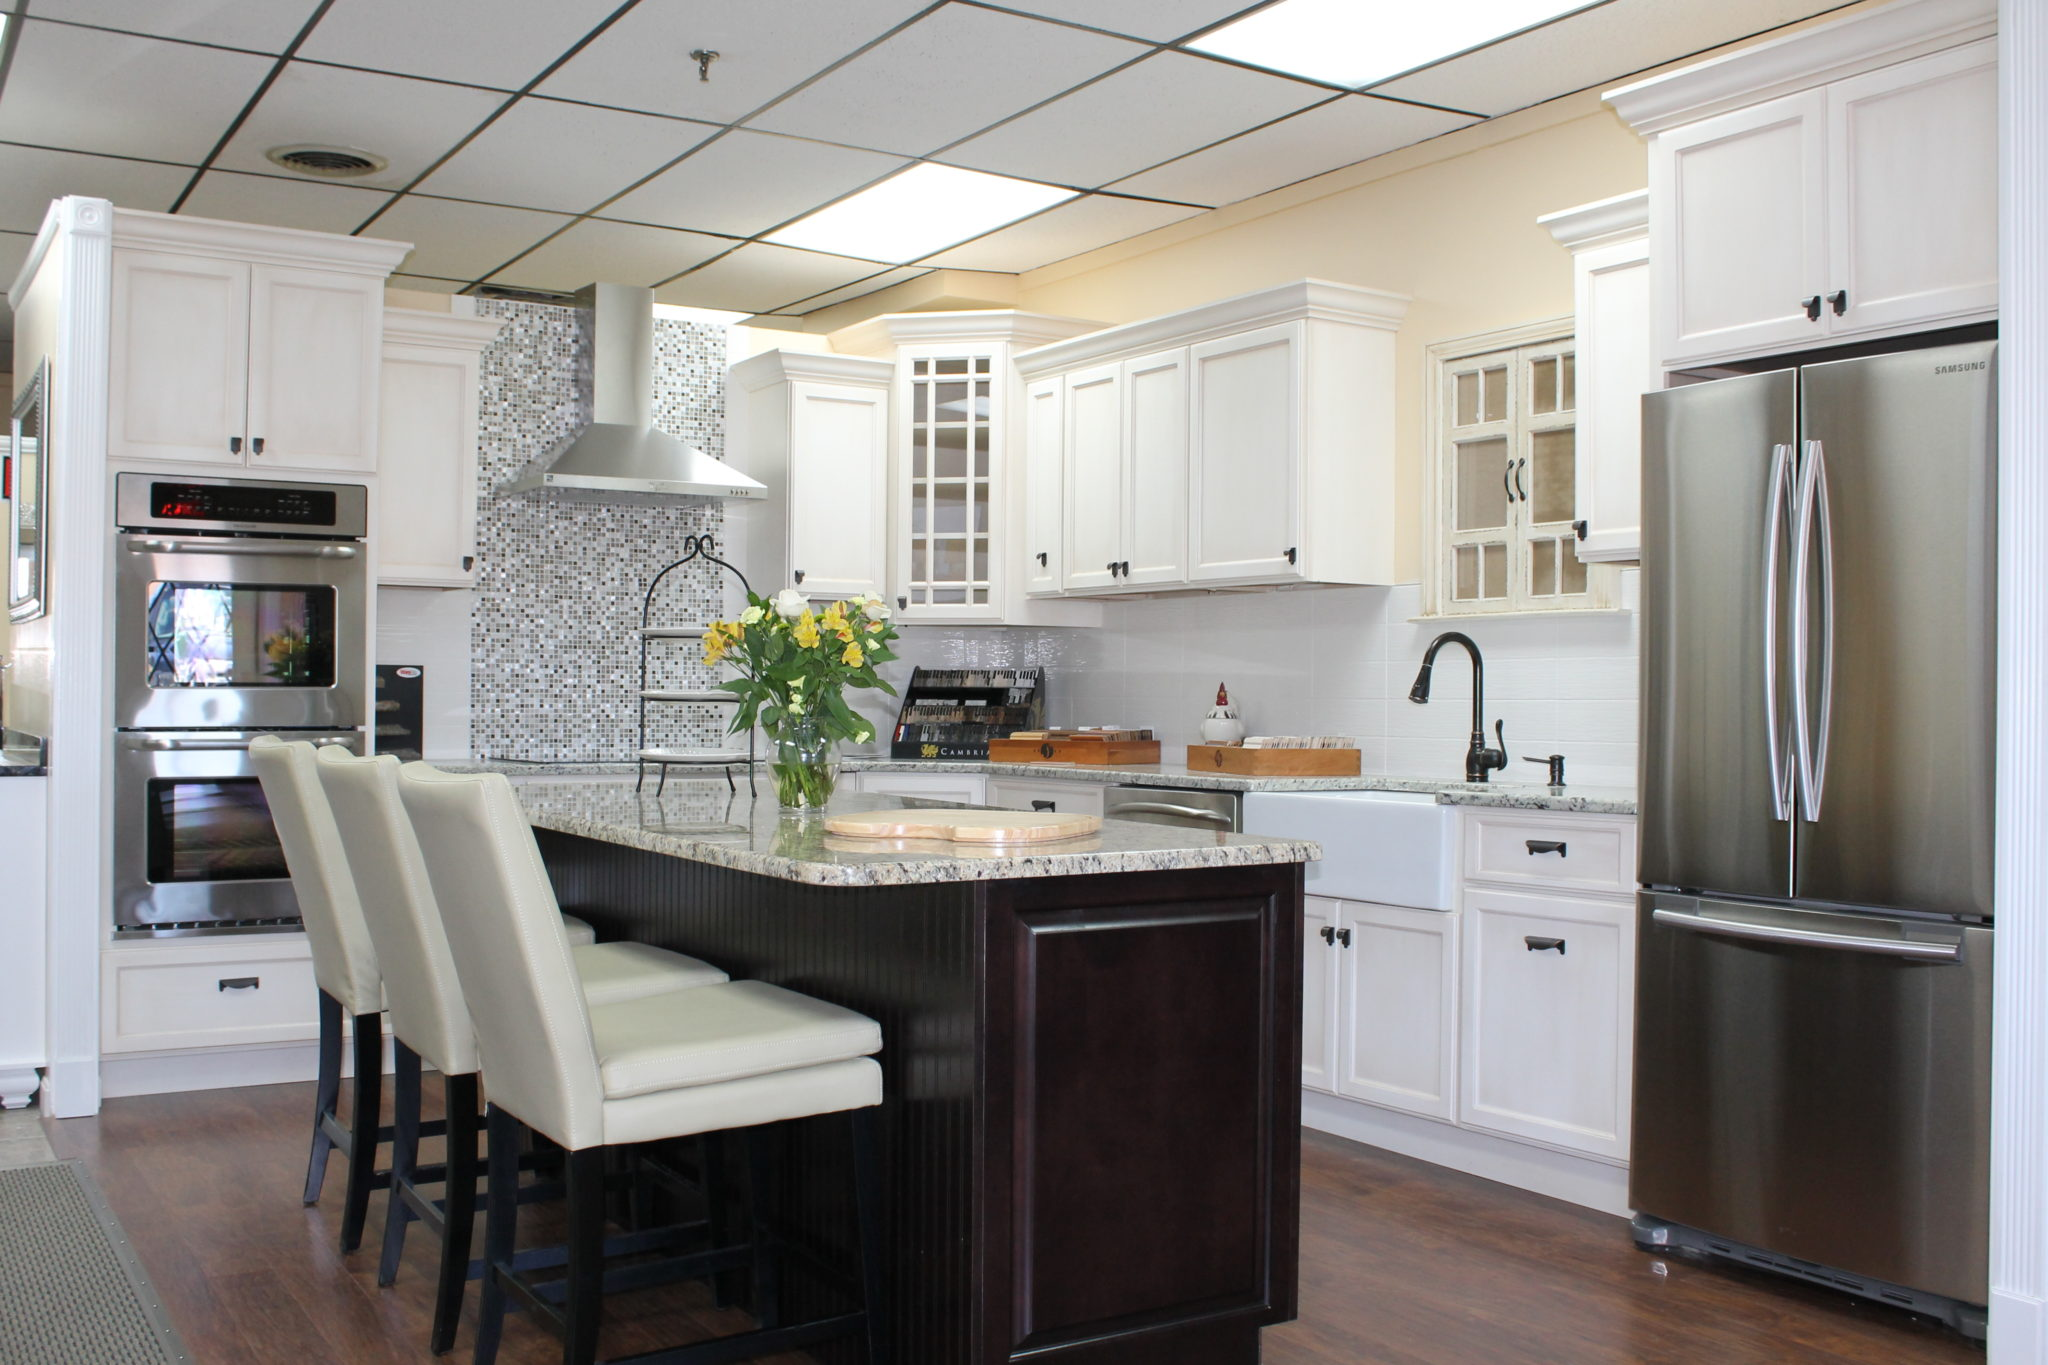 kitchen design services kitchen design services home design ideas designsars kitchen bathroom design services